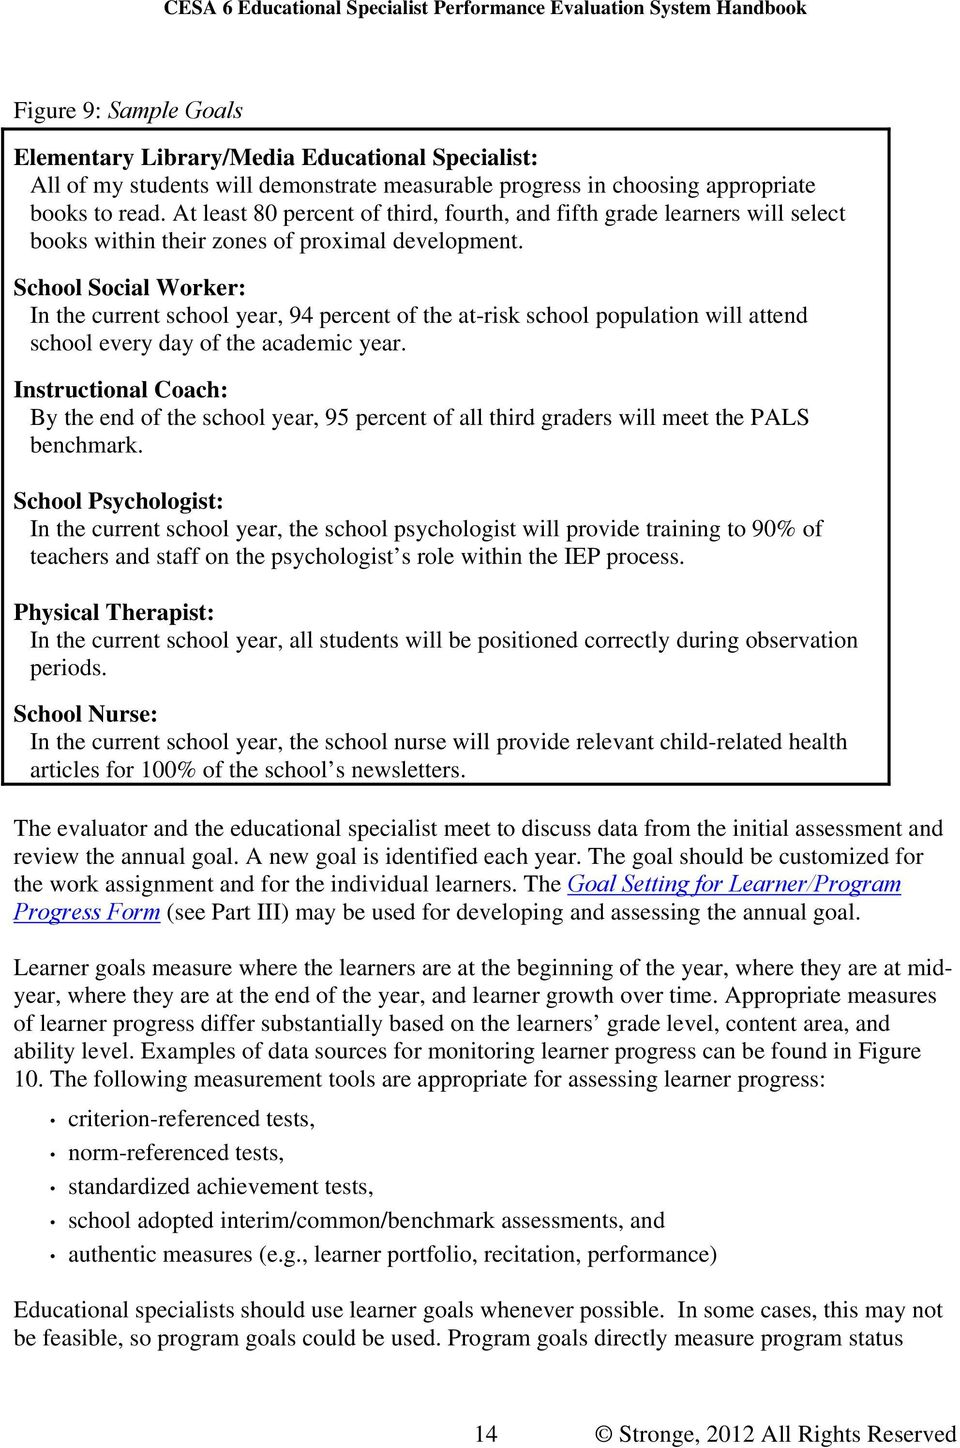 Educational Specialist Performance Evaluation System - PDF